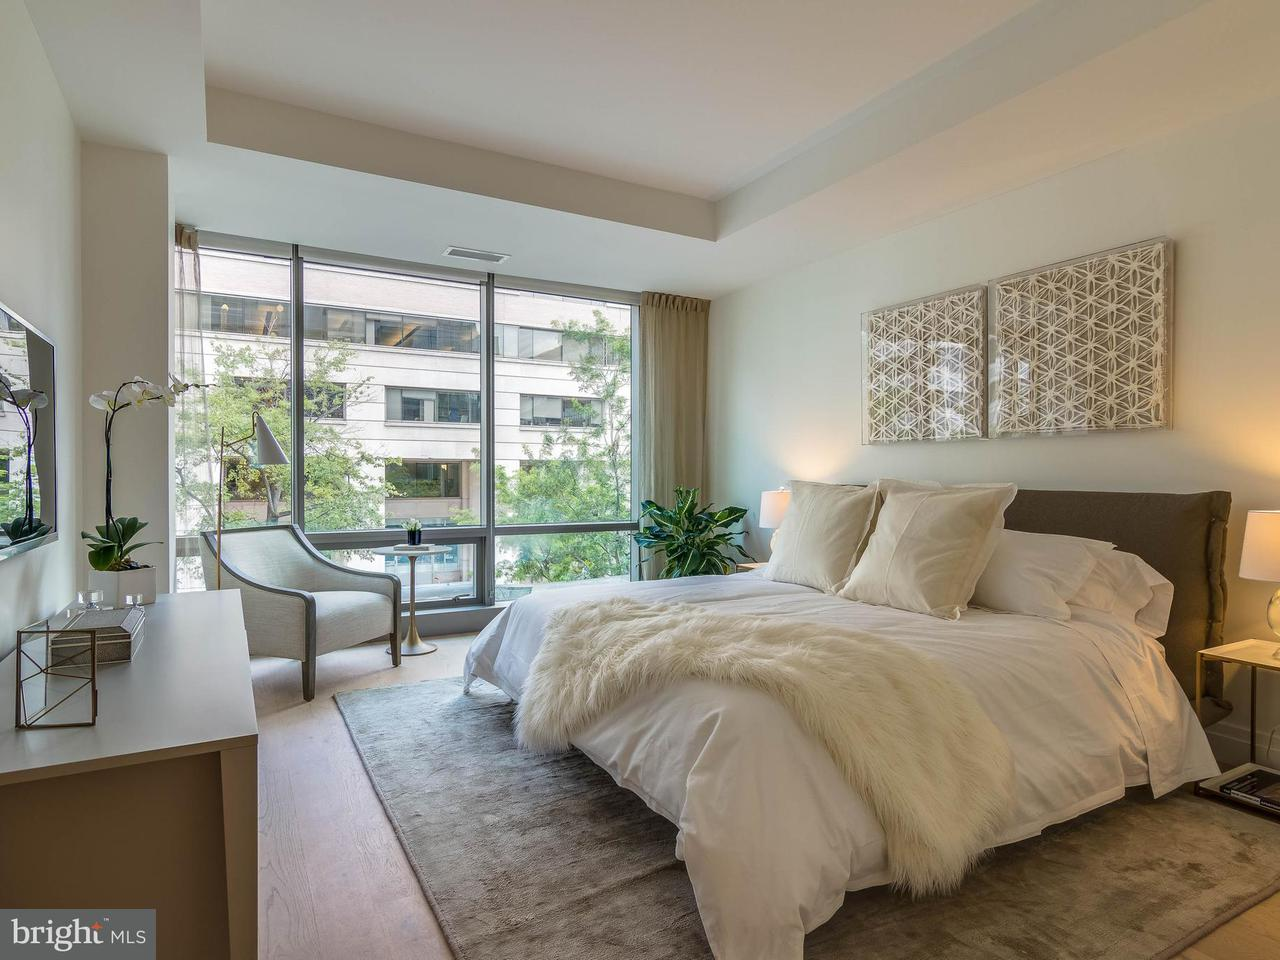 Additional photo for property listing at 2501 M ST NW #203 2501 M ST NW #203 华盛顿市, 哥伦比亚特区 20037 美国